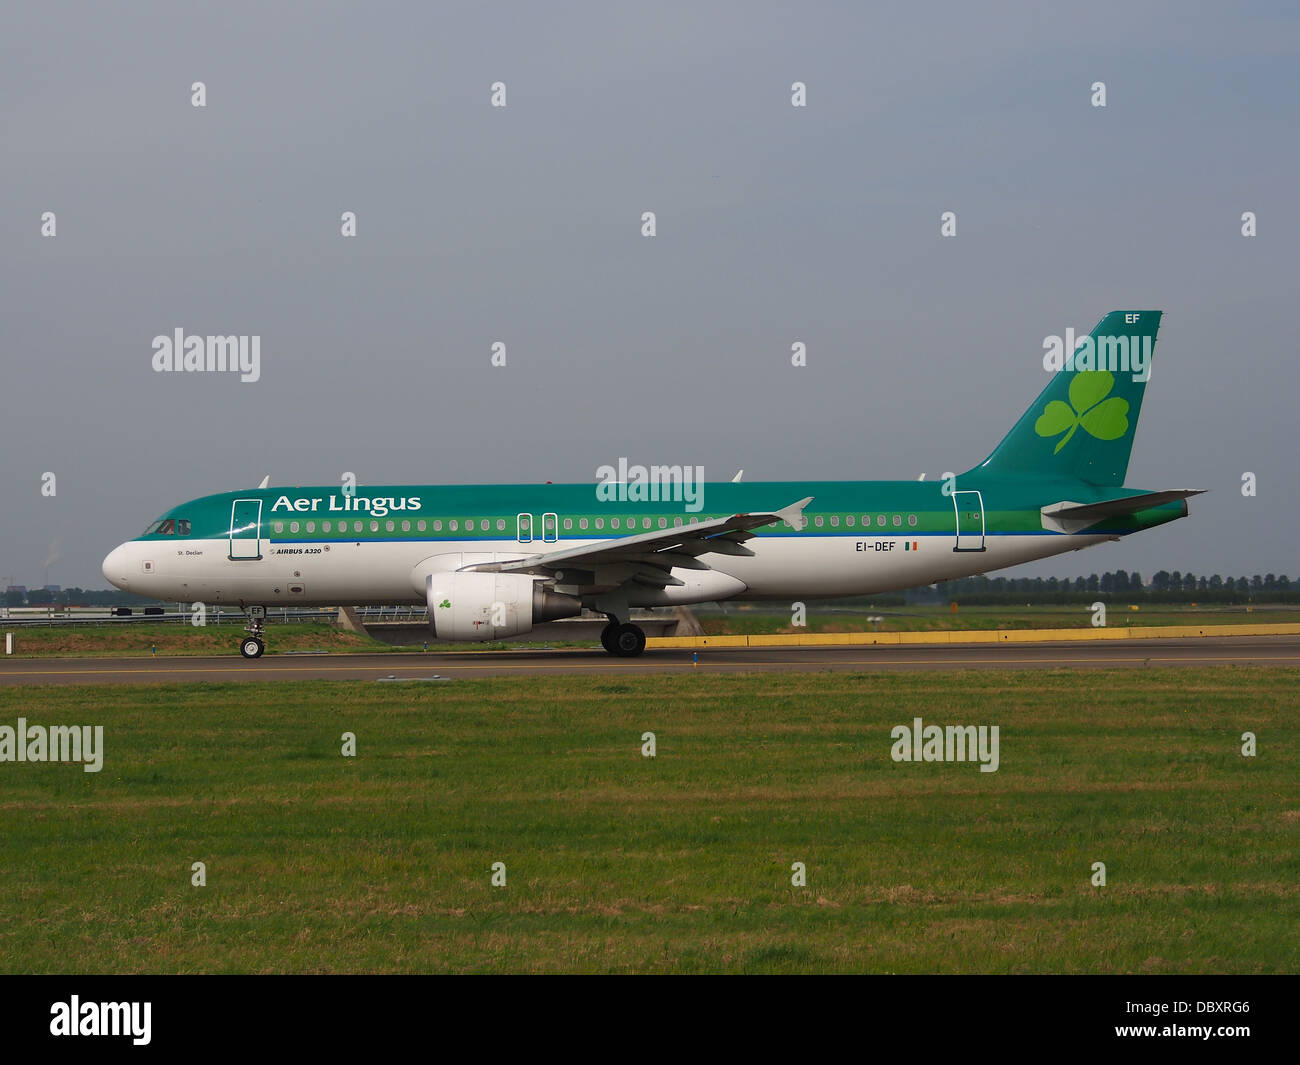 EI-DEF A320-214 Aer Lingus taxiing 13july2013 -002 - Stock Image